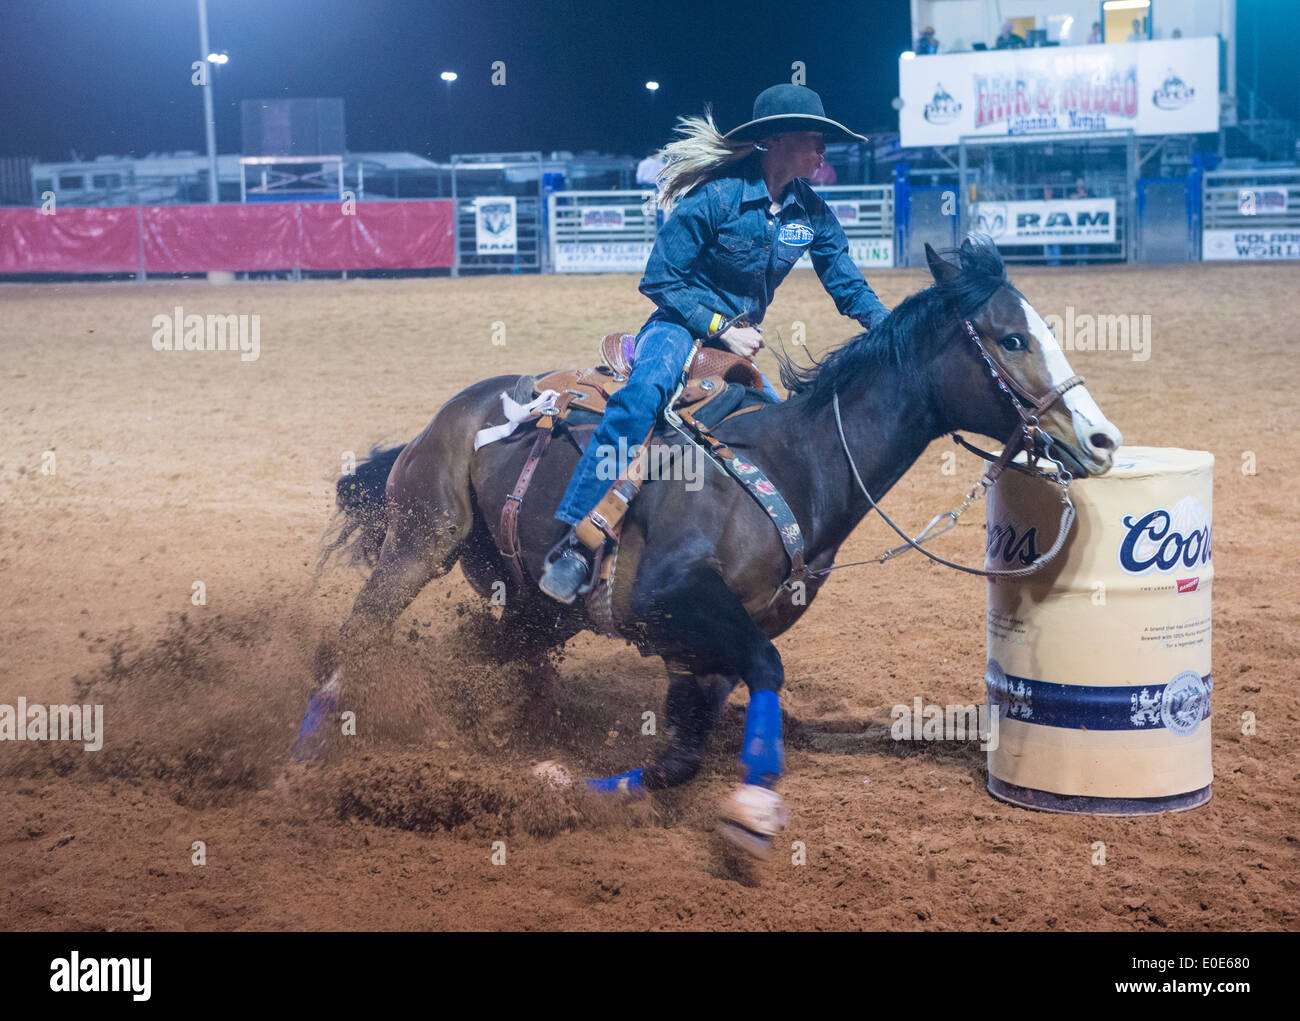 Cowgirl Participating in a Barrel racing competition in the Clark County Rodeo a Professional Rodeo held in Logandale Nevada - Stock Image